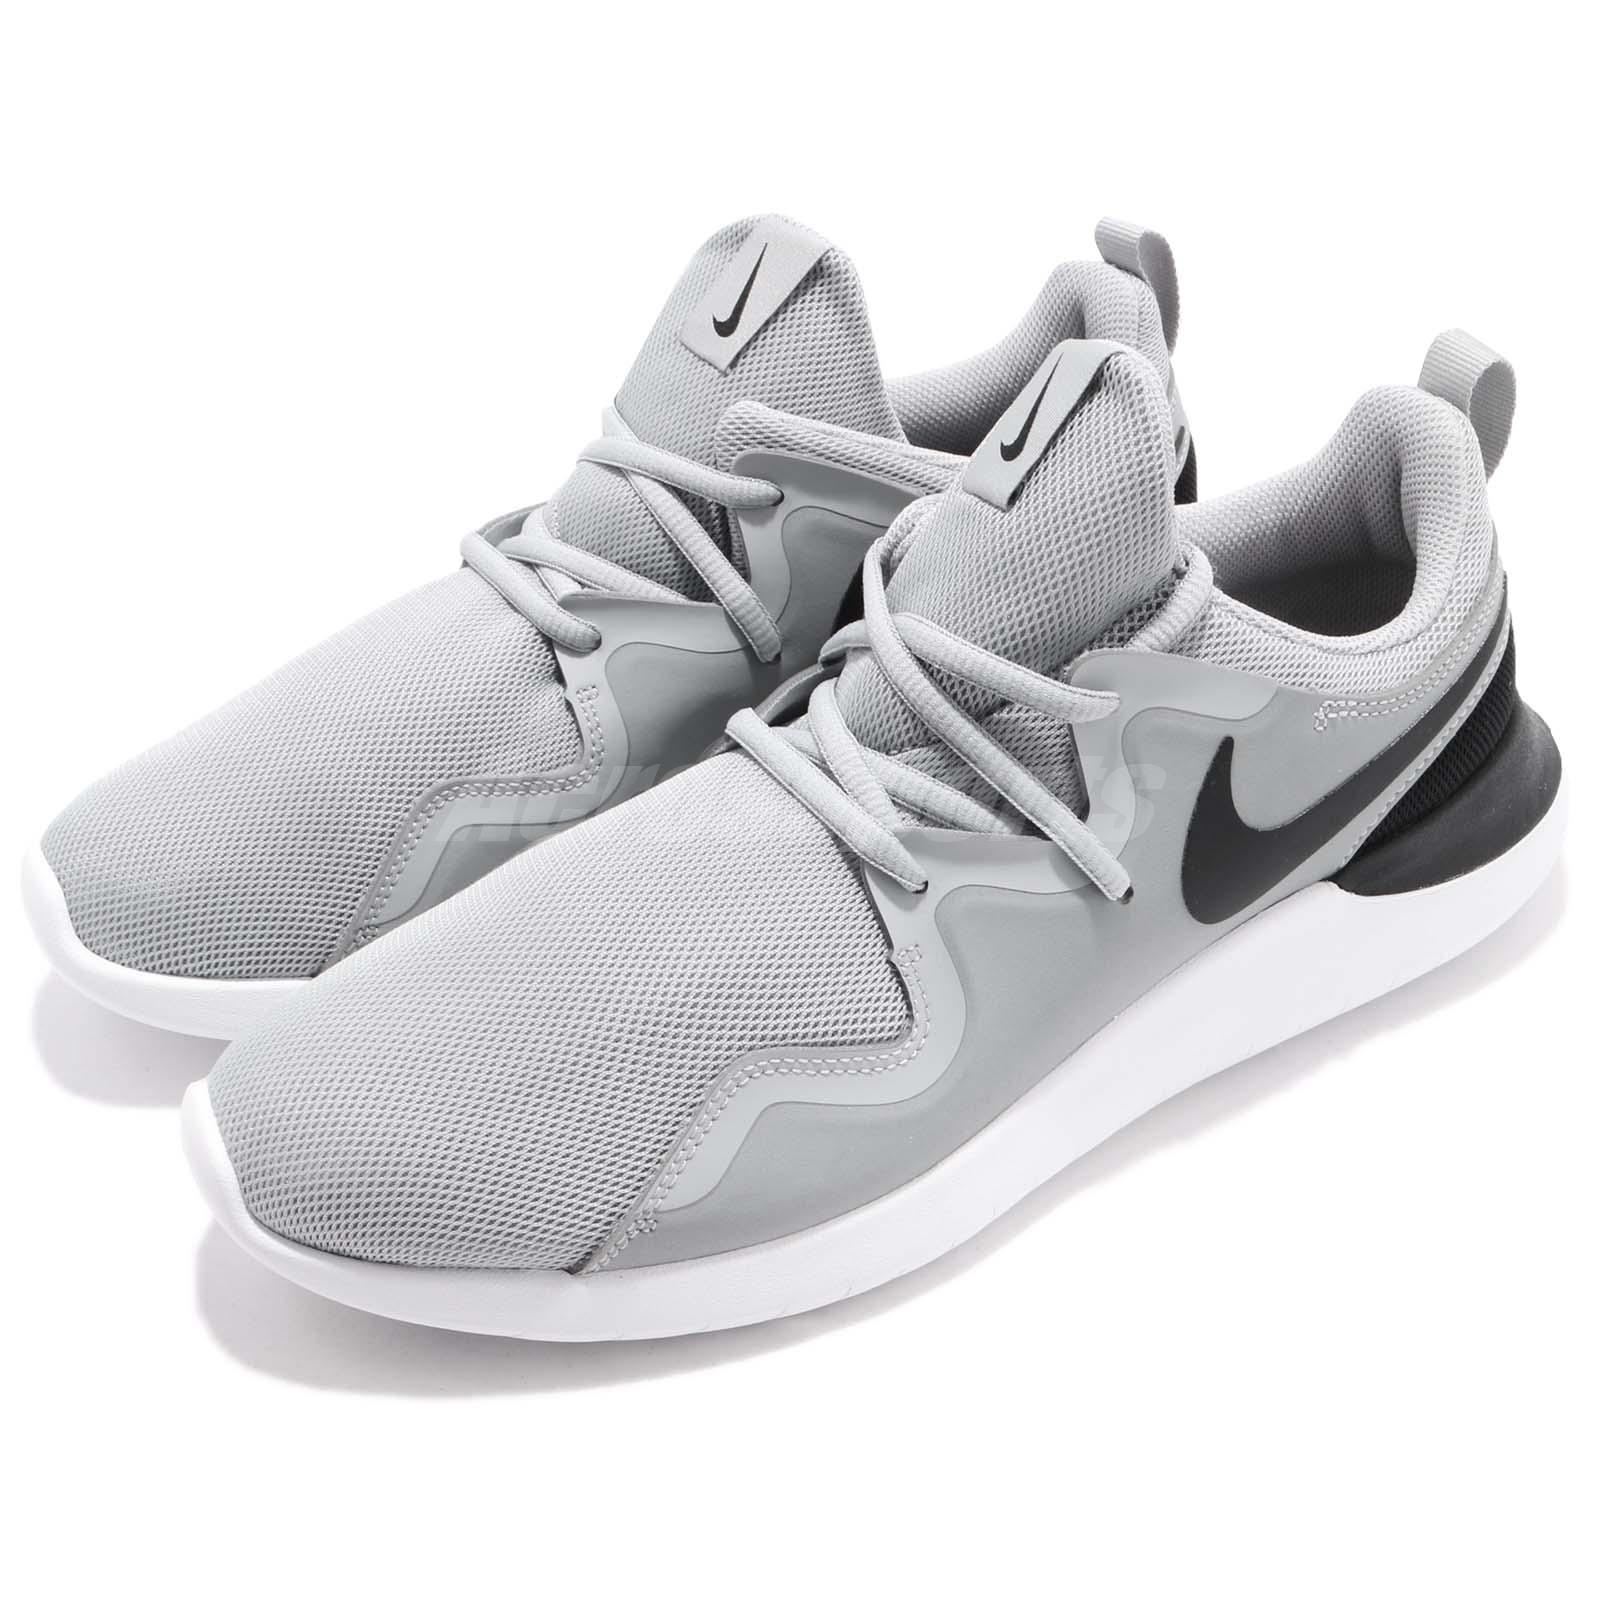 designer fashion aa43f b3ff7 Details about Nike Tessen Wolf Grey Black White Men Athletic Shoes Sneakers  Trainer AA2160-002